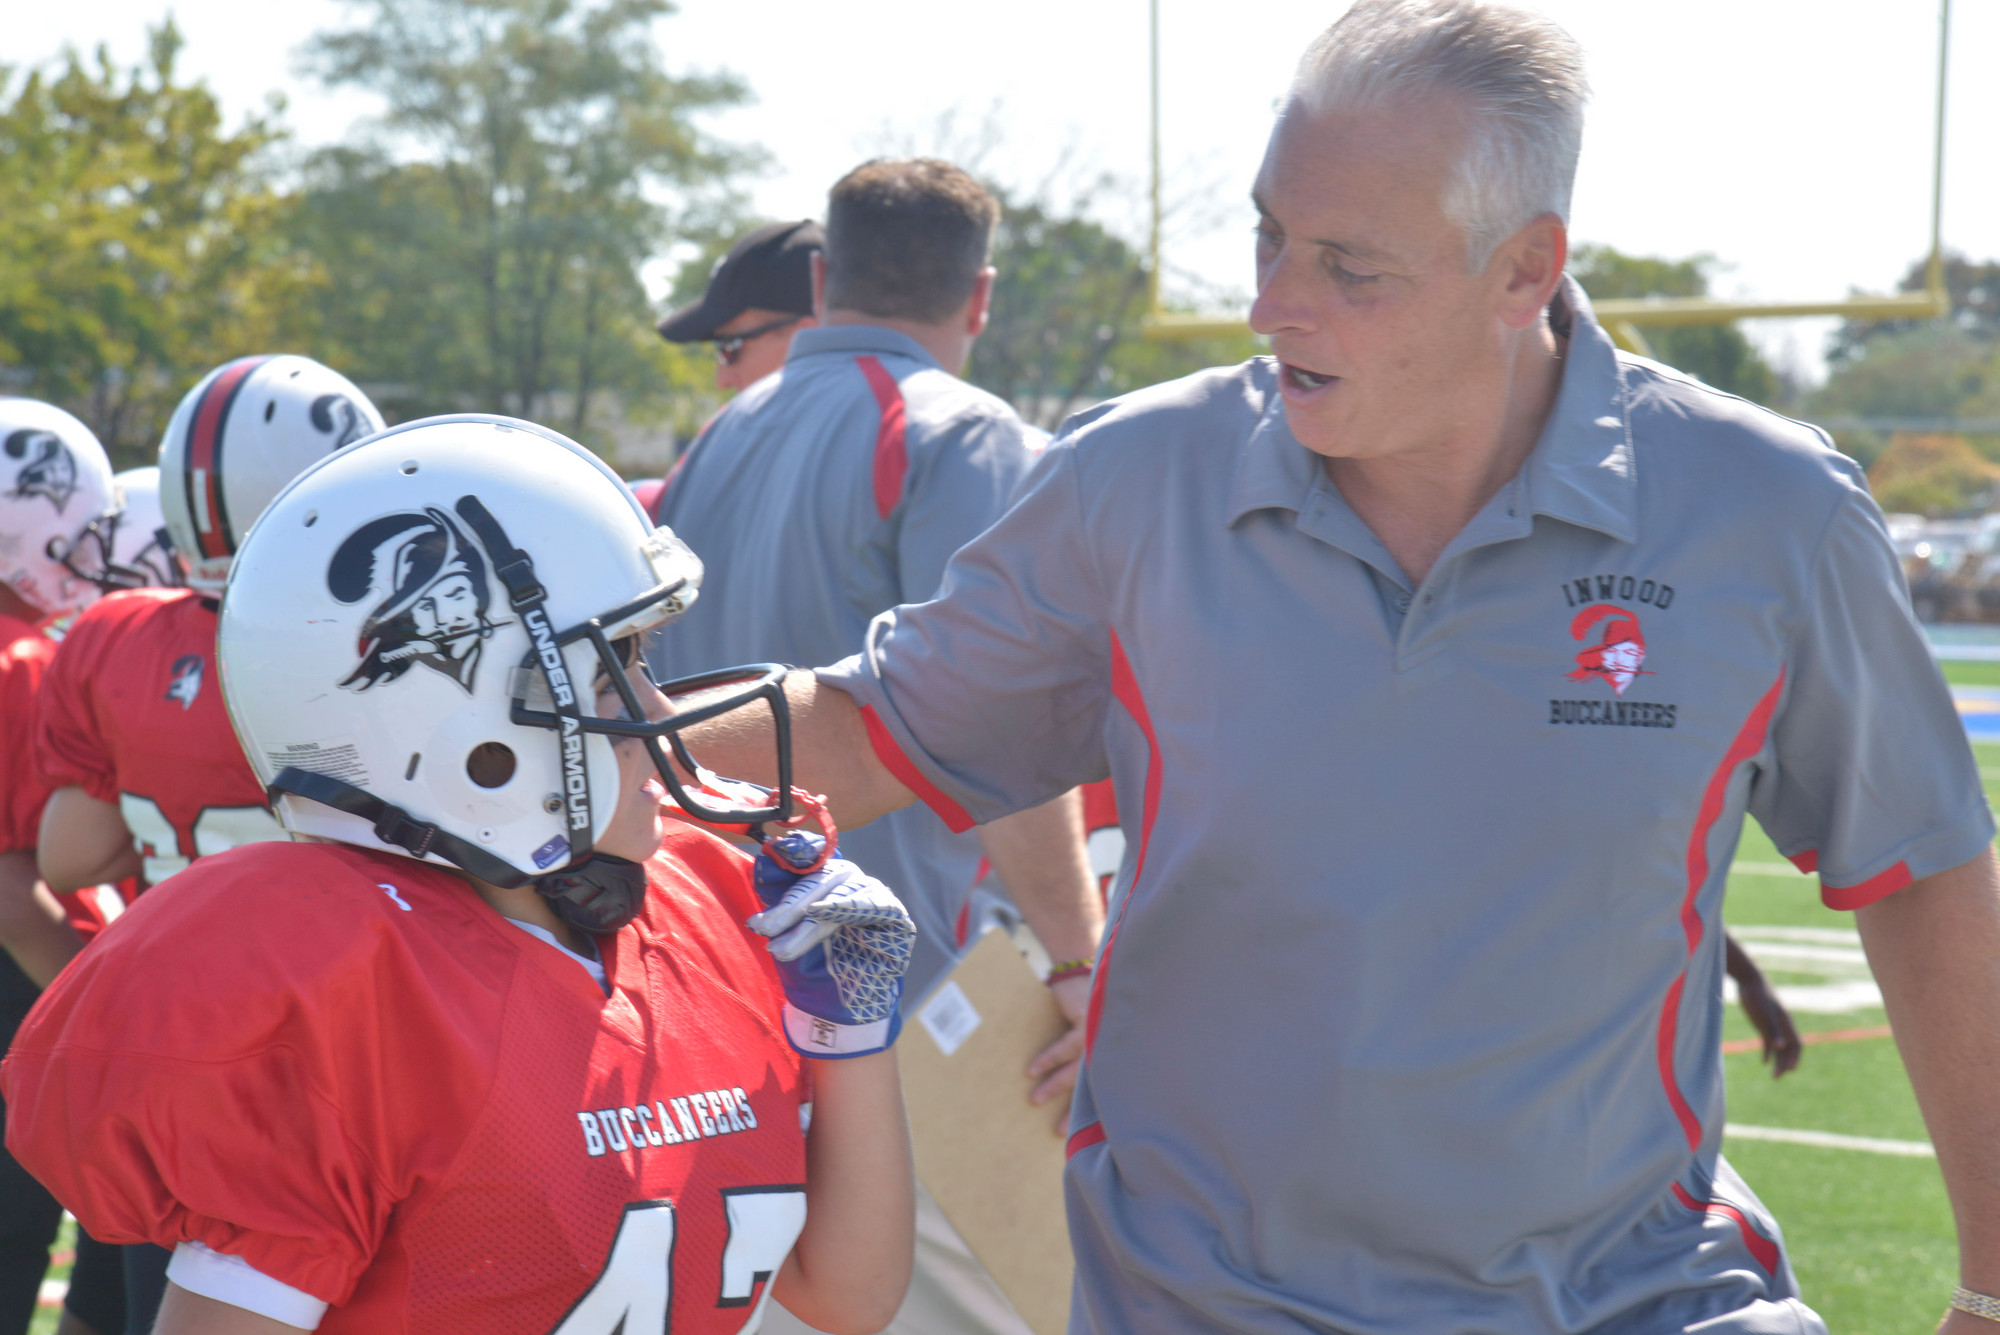 Inwood Buccaneer Day was part competition and part football education. Coach Frank Ruta shared some knowledge with John Cusumano.